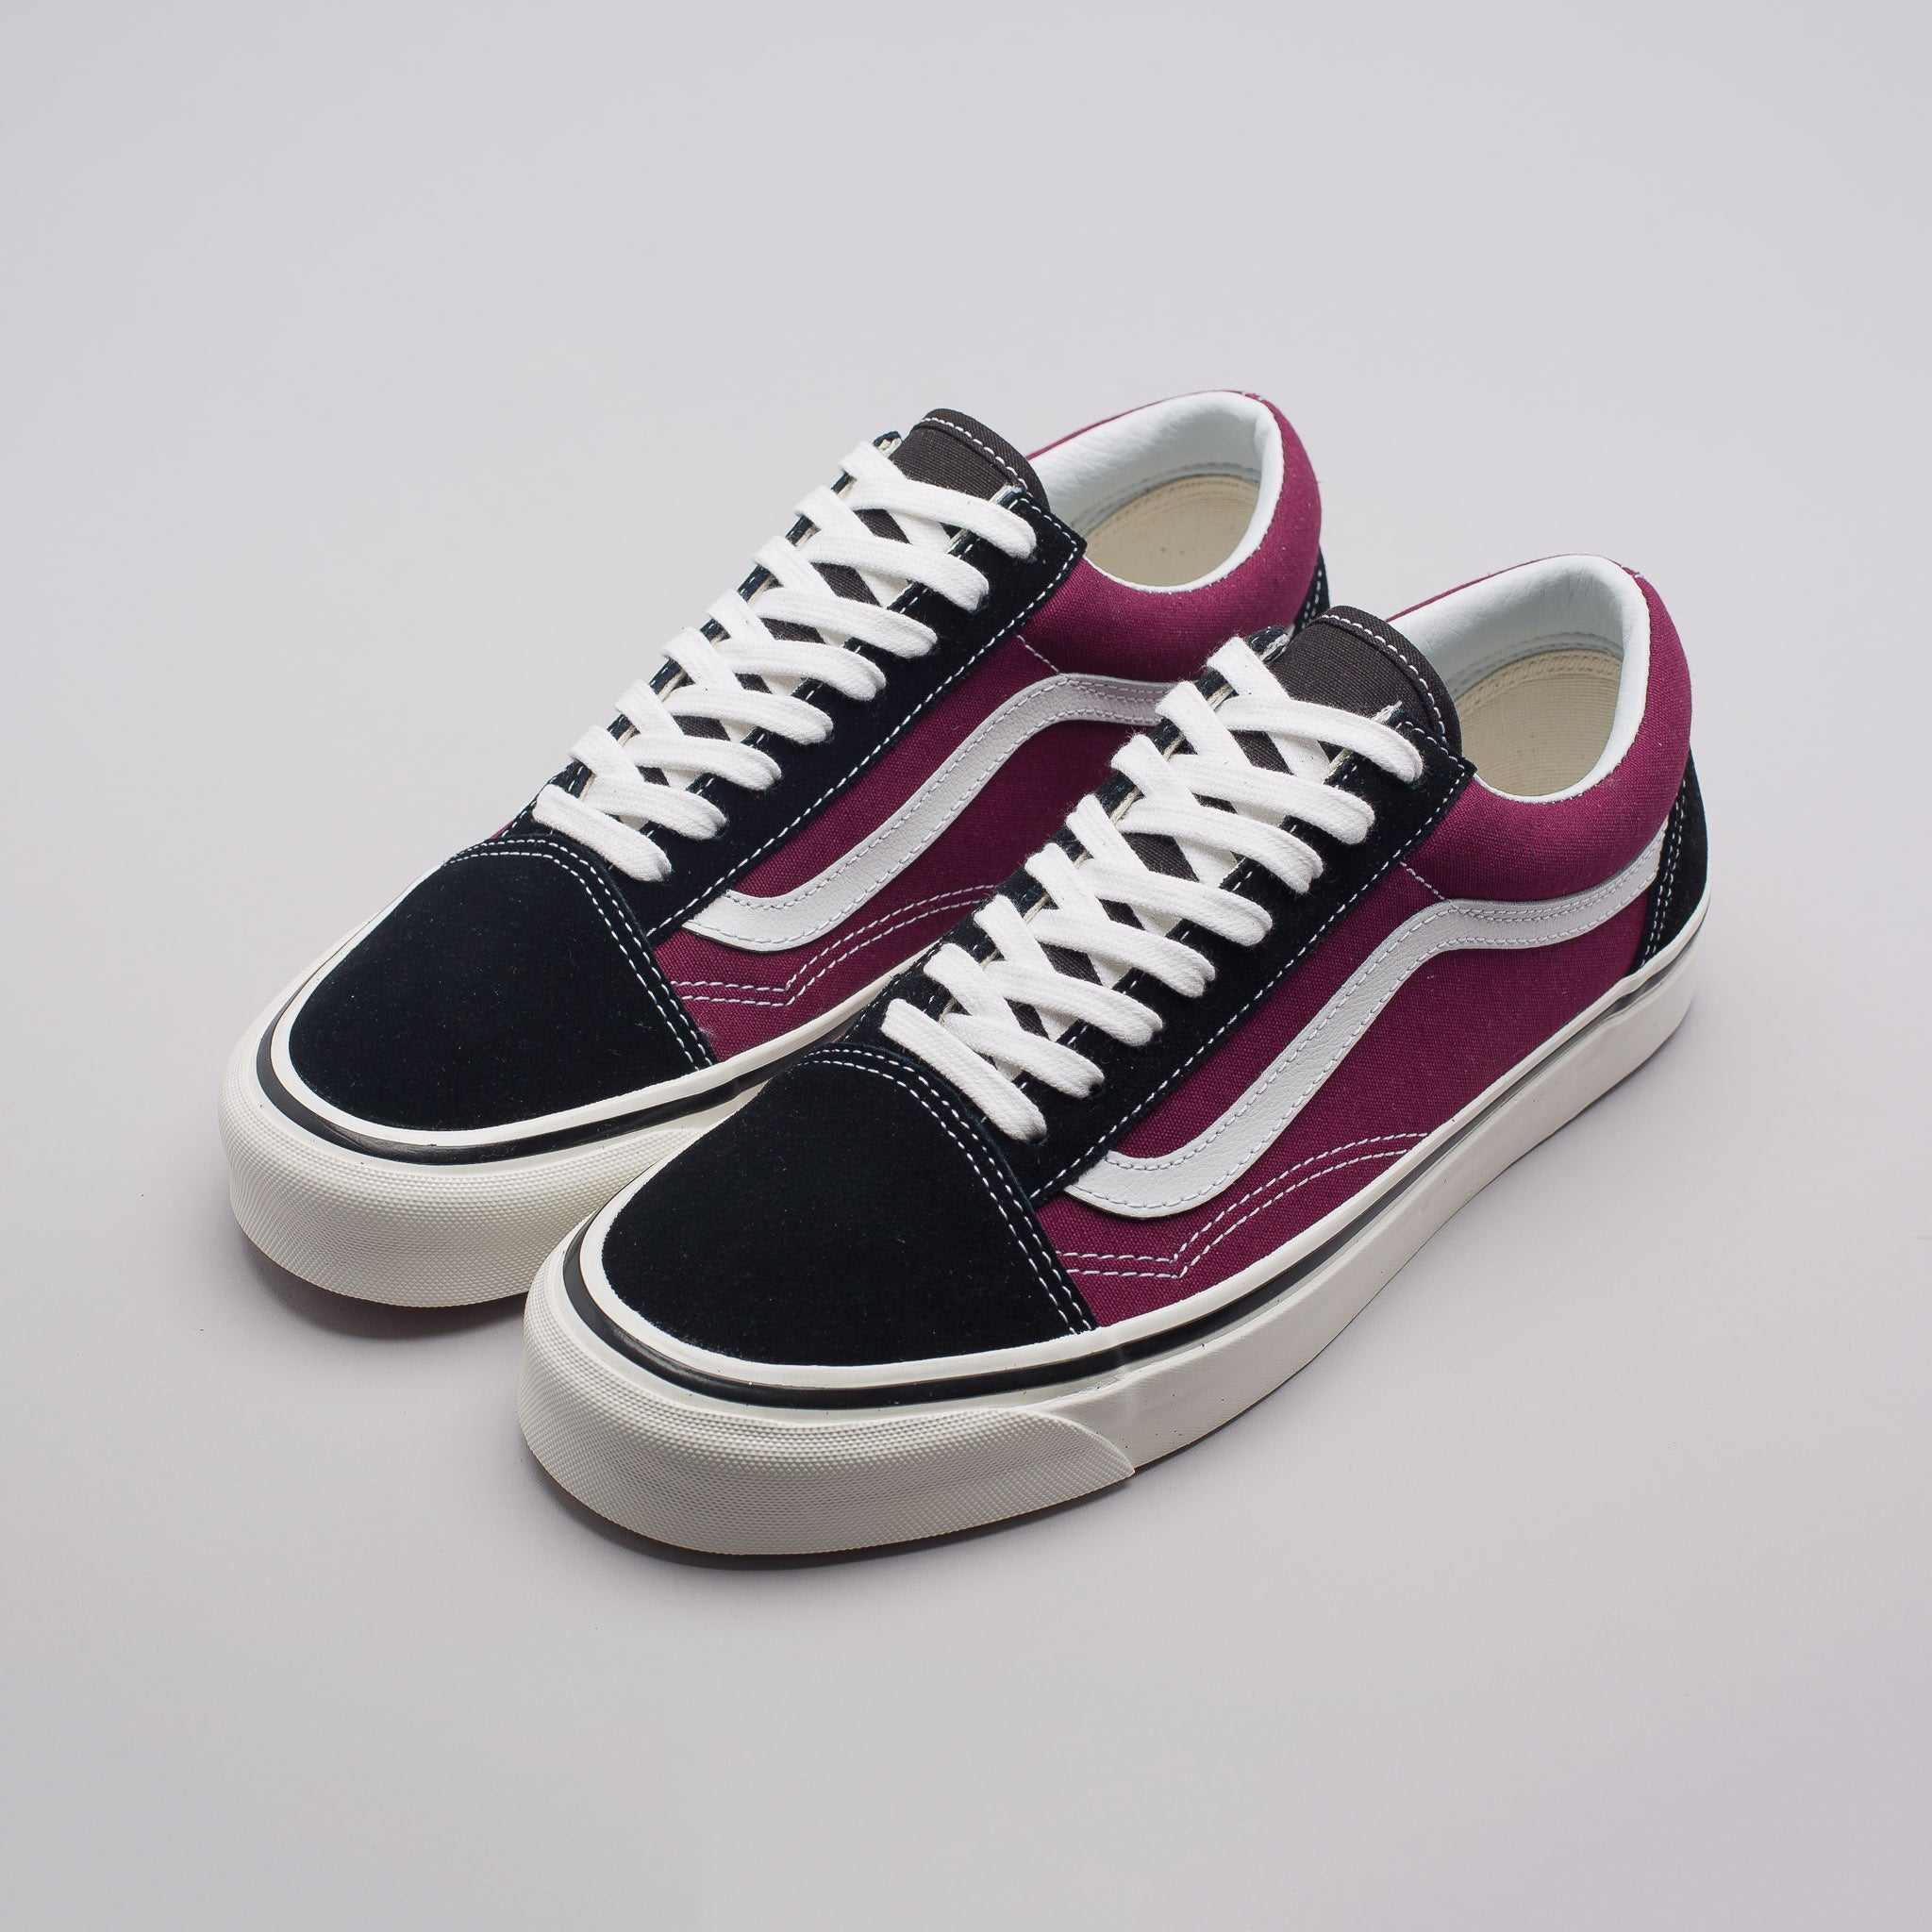 vans old skool 36 dx red